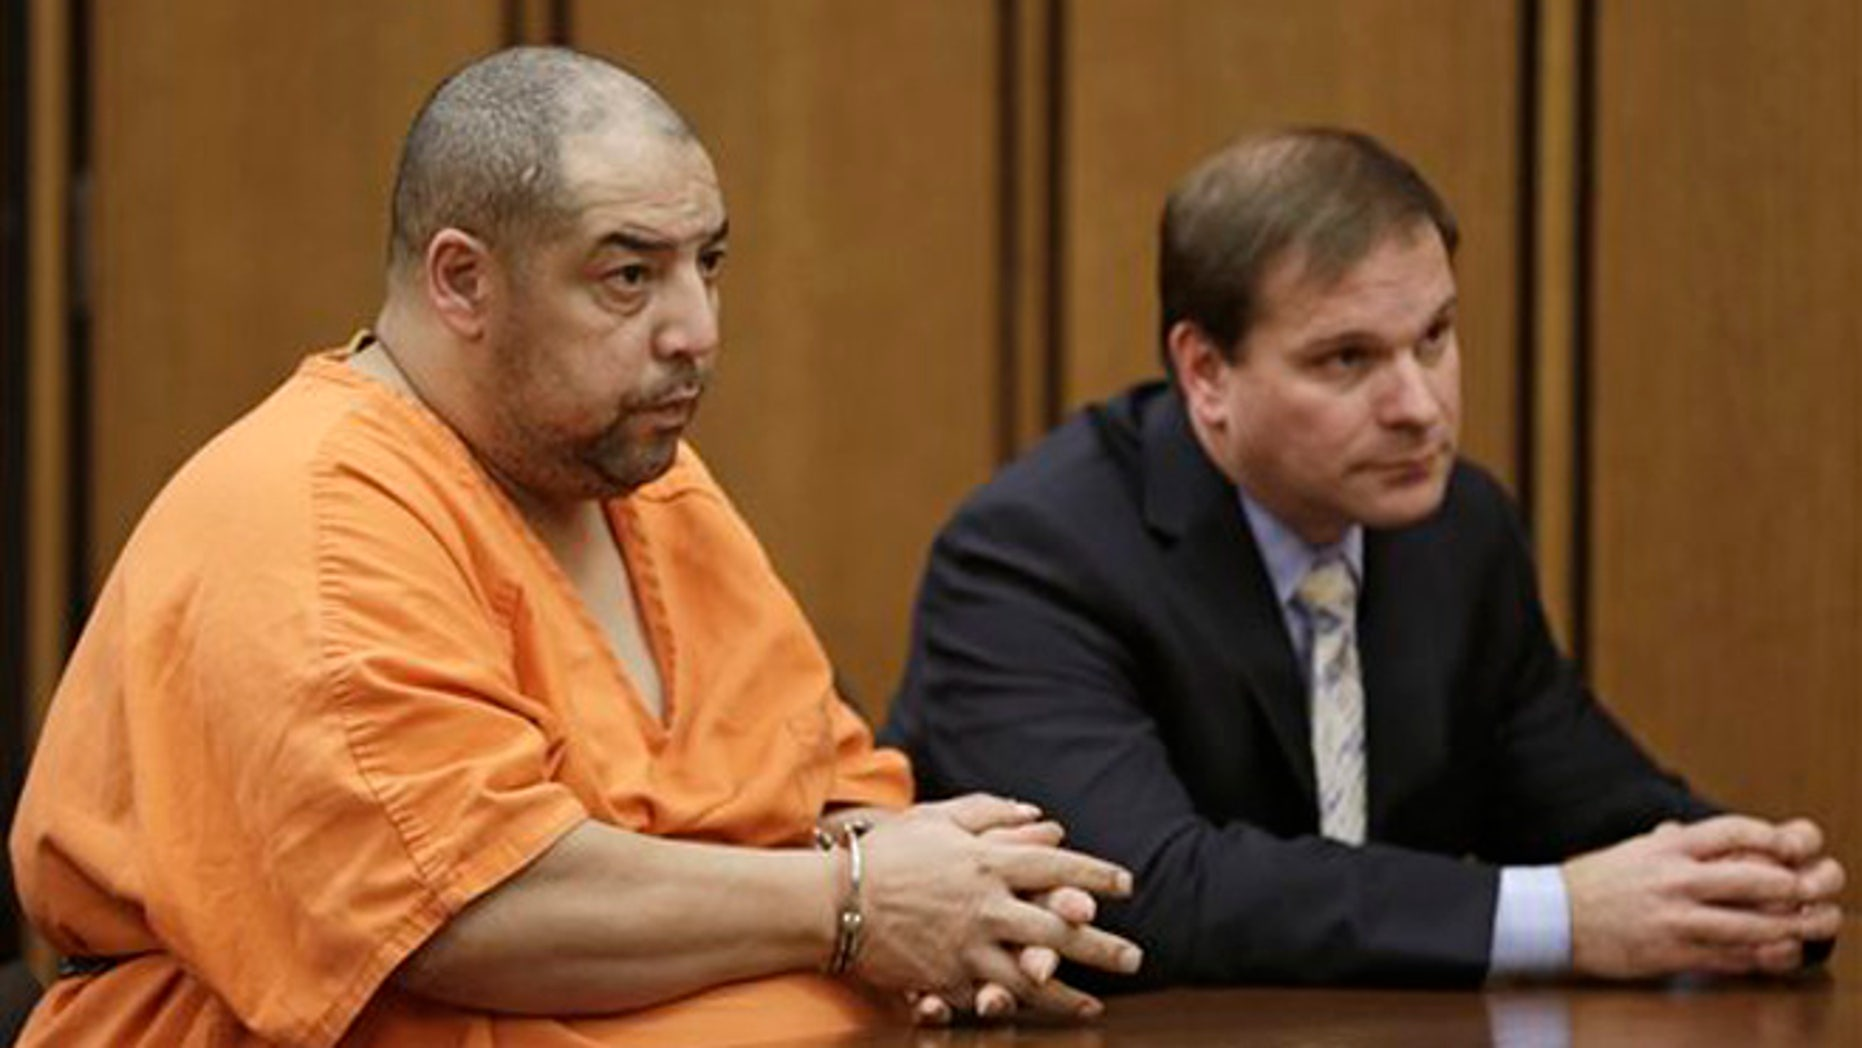 Elias Acevedo, left, looks toward the judge during his pretrial hearing Monday, Dec. 2, 2013, in Cleveland. Acevedo, a convicted sex offender, is charged with two murders and 173 counts of rape. The judge set the trial date for Feb. 24, 2014. Defense attorney Bret Jordan, right, listens. (AP Photo/Tony Dejak)